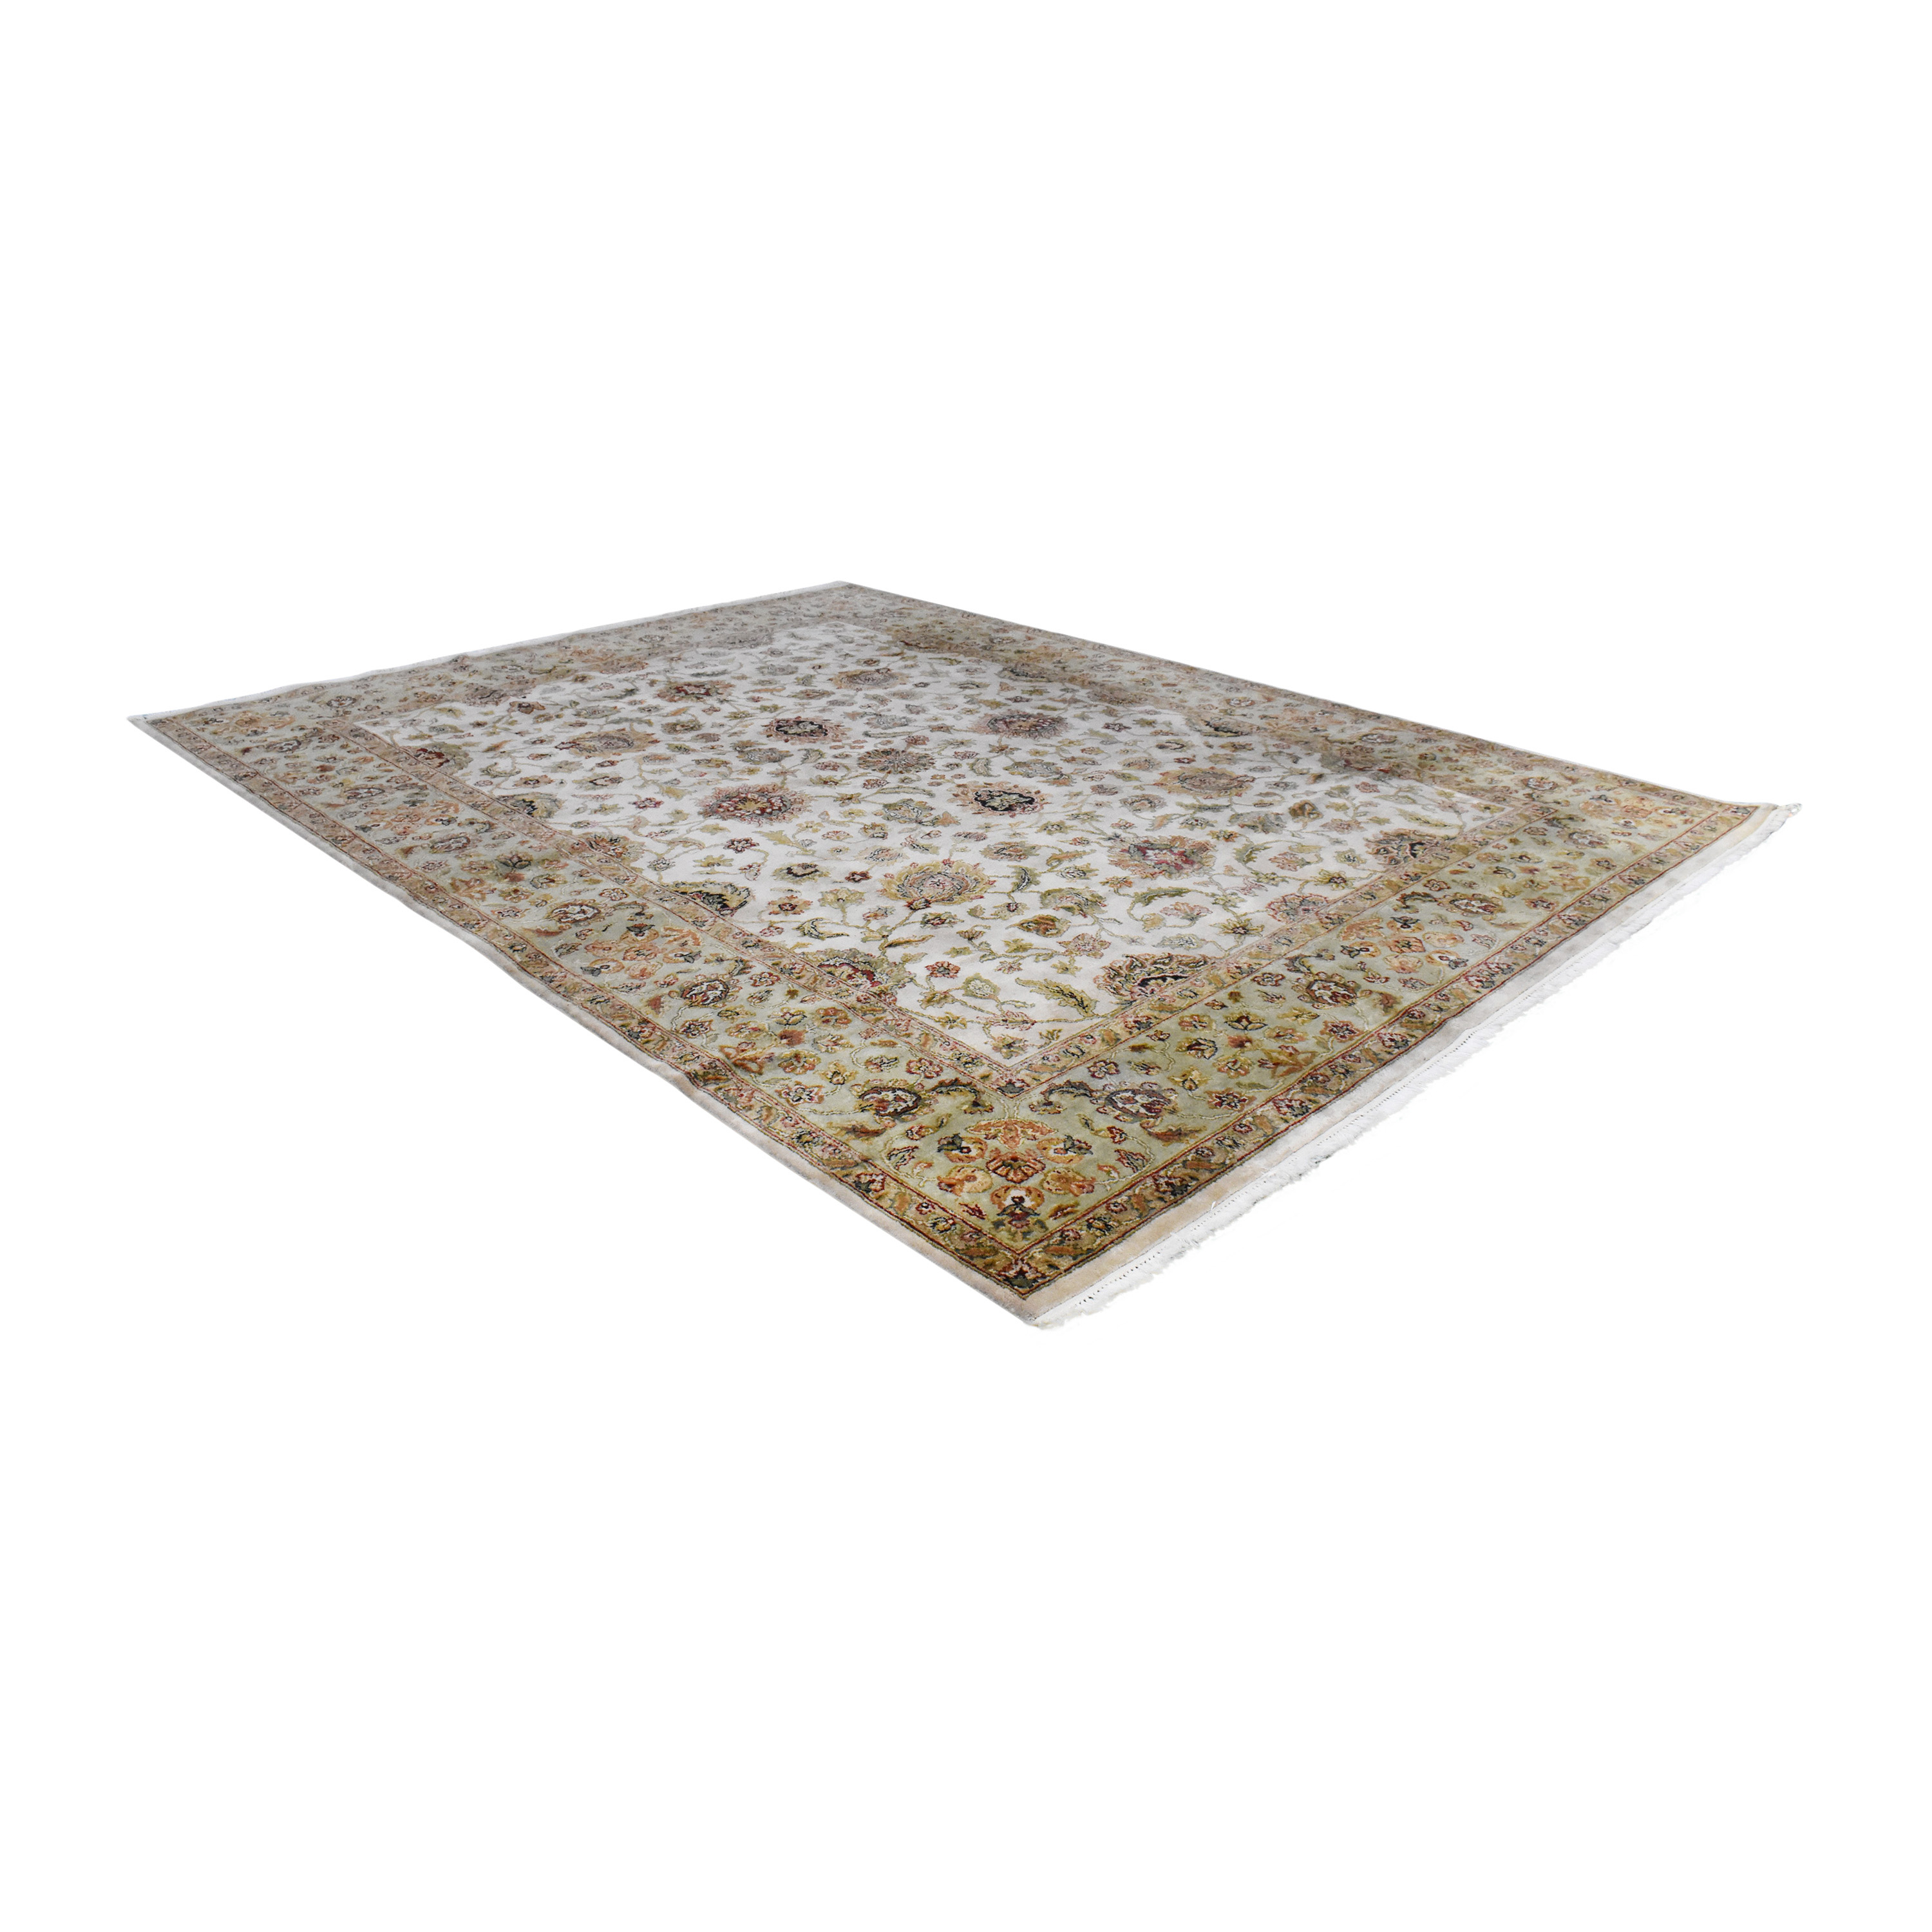 Macy's Macy's Jaipur Collection Area Rug used